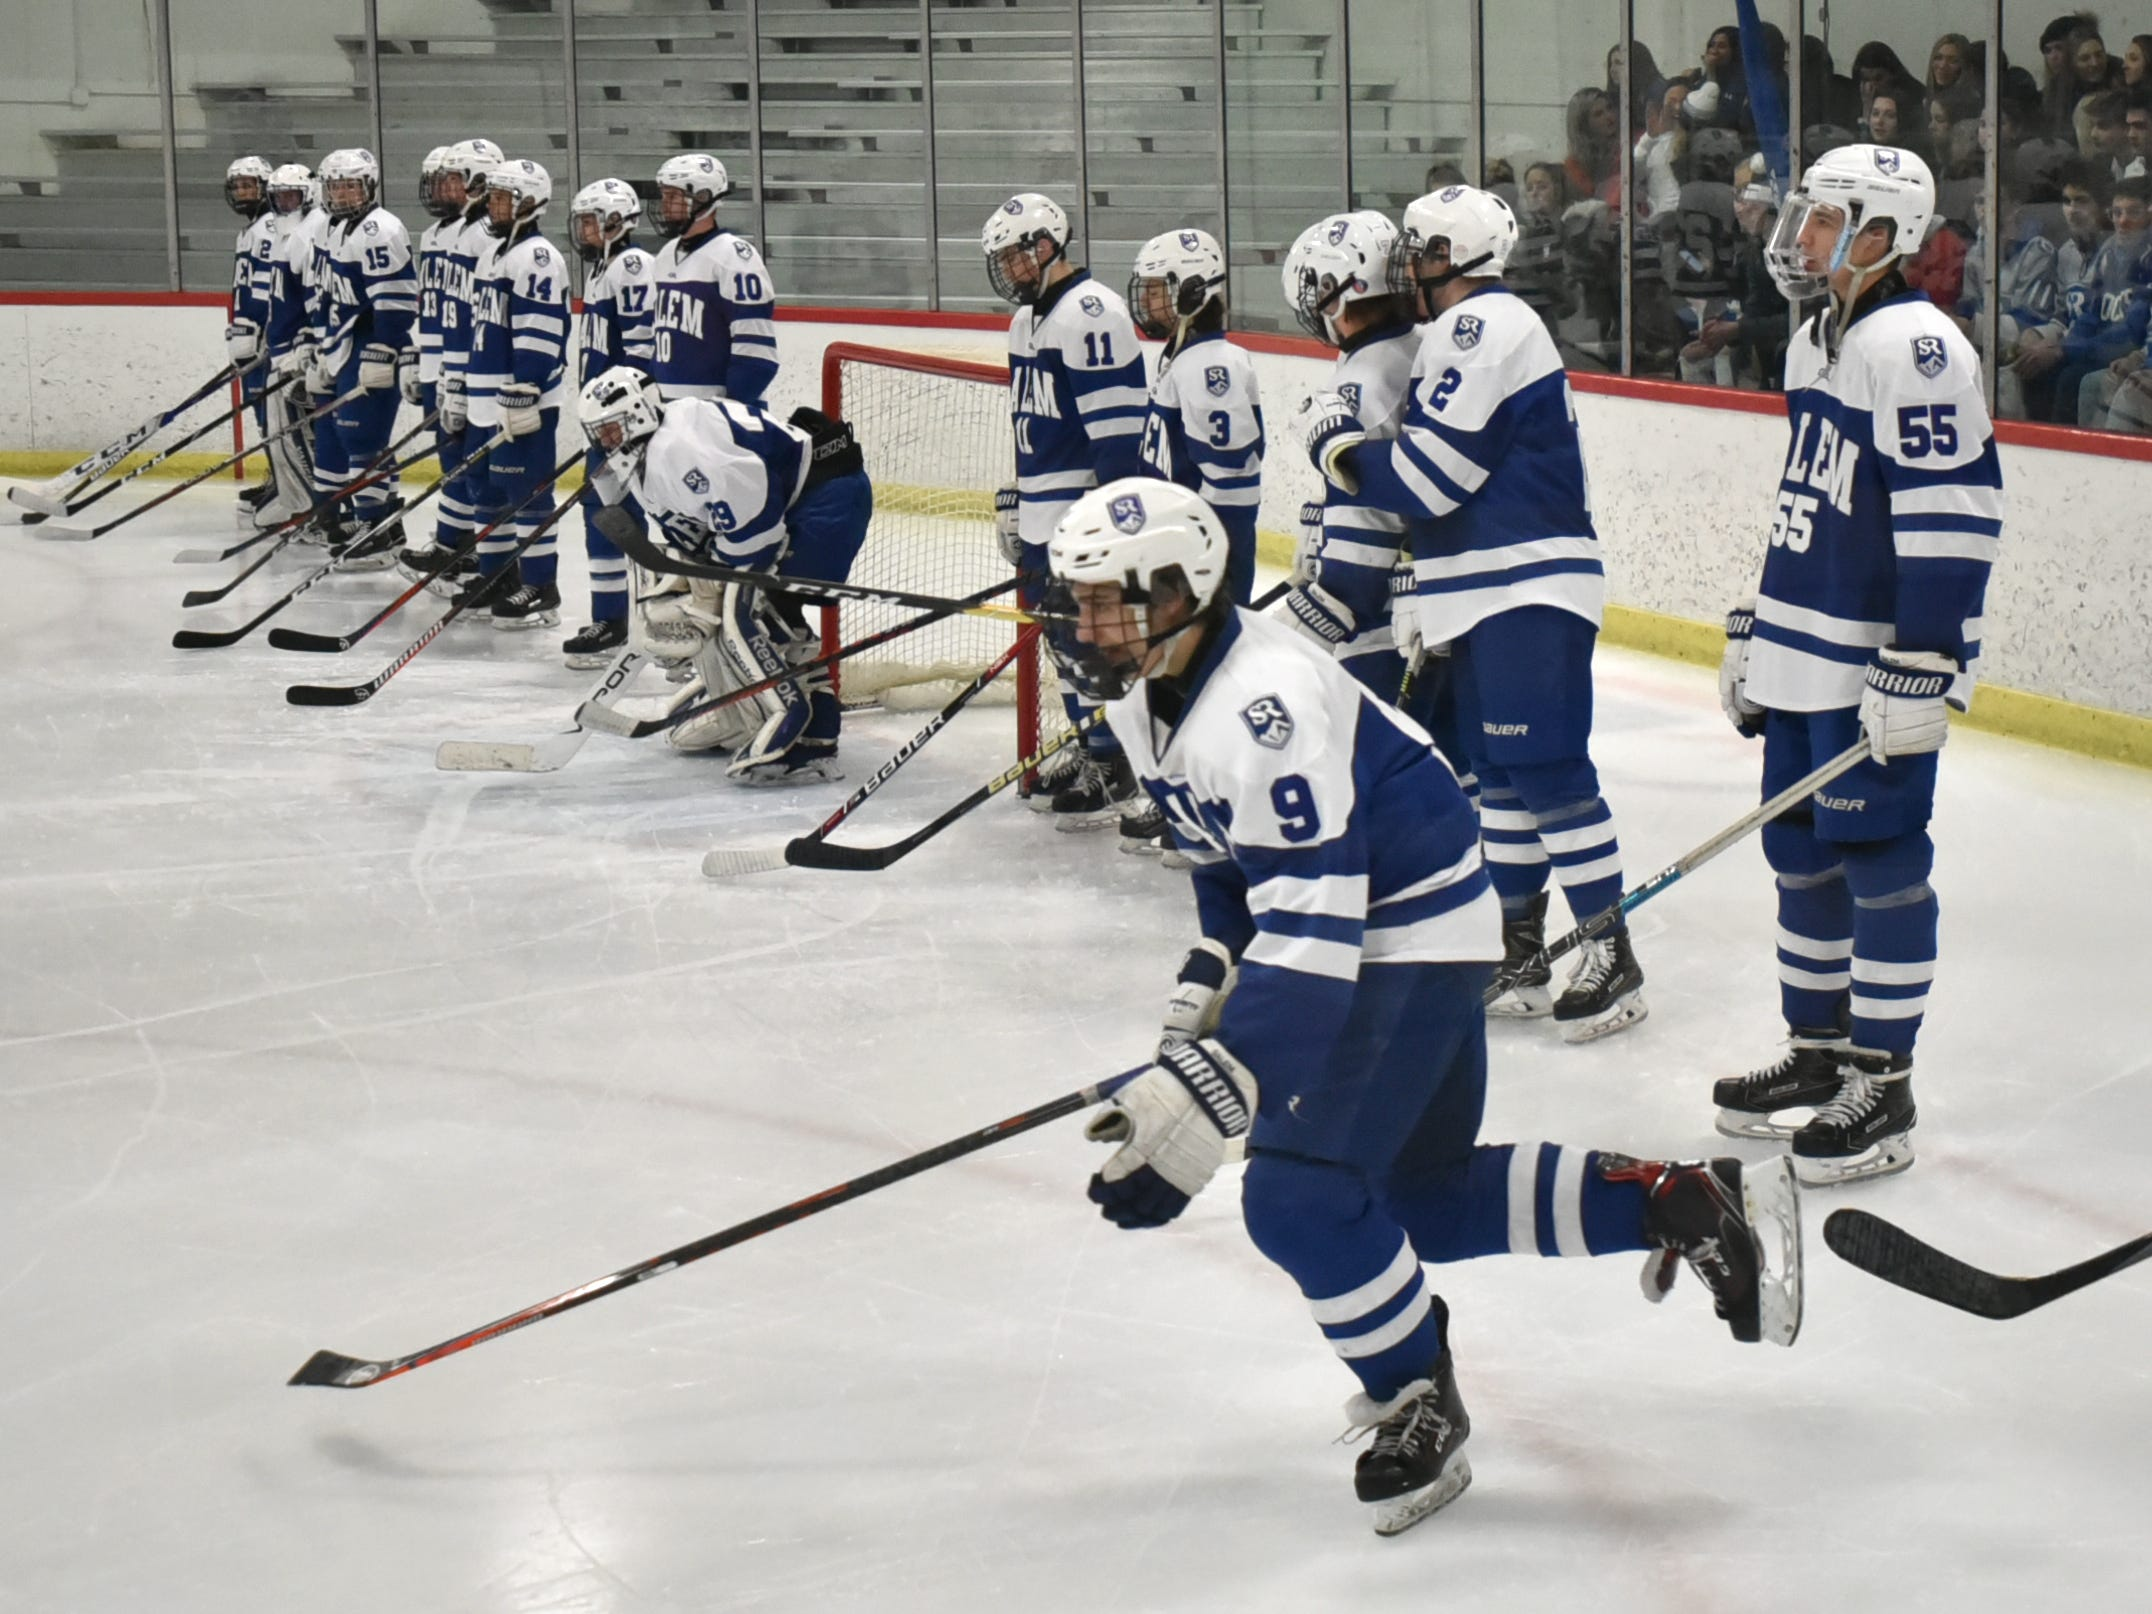 Salem High's Alex Schaumberger skates out to center ice after being introduced on March 6 at the Rock's MHSAA quarterfinal playoff hockey game against Detroit Catholic Central.